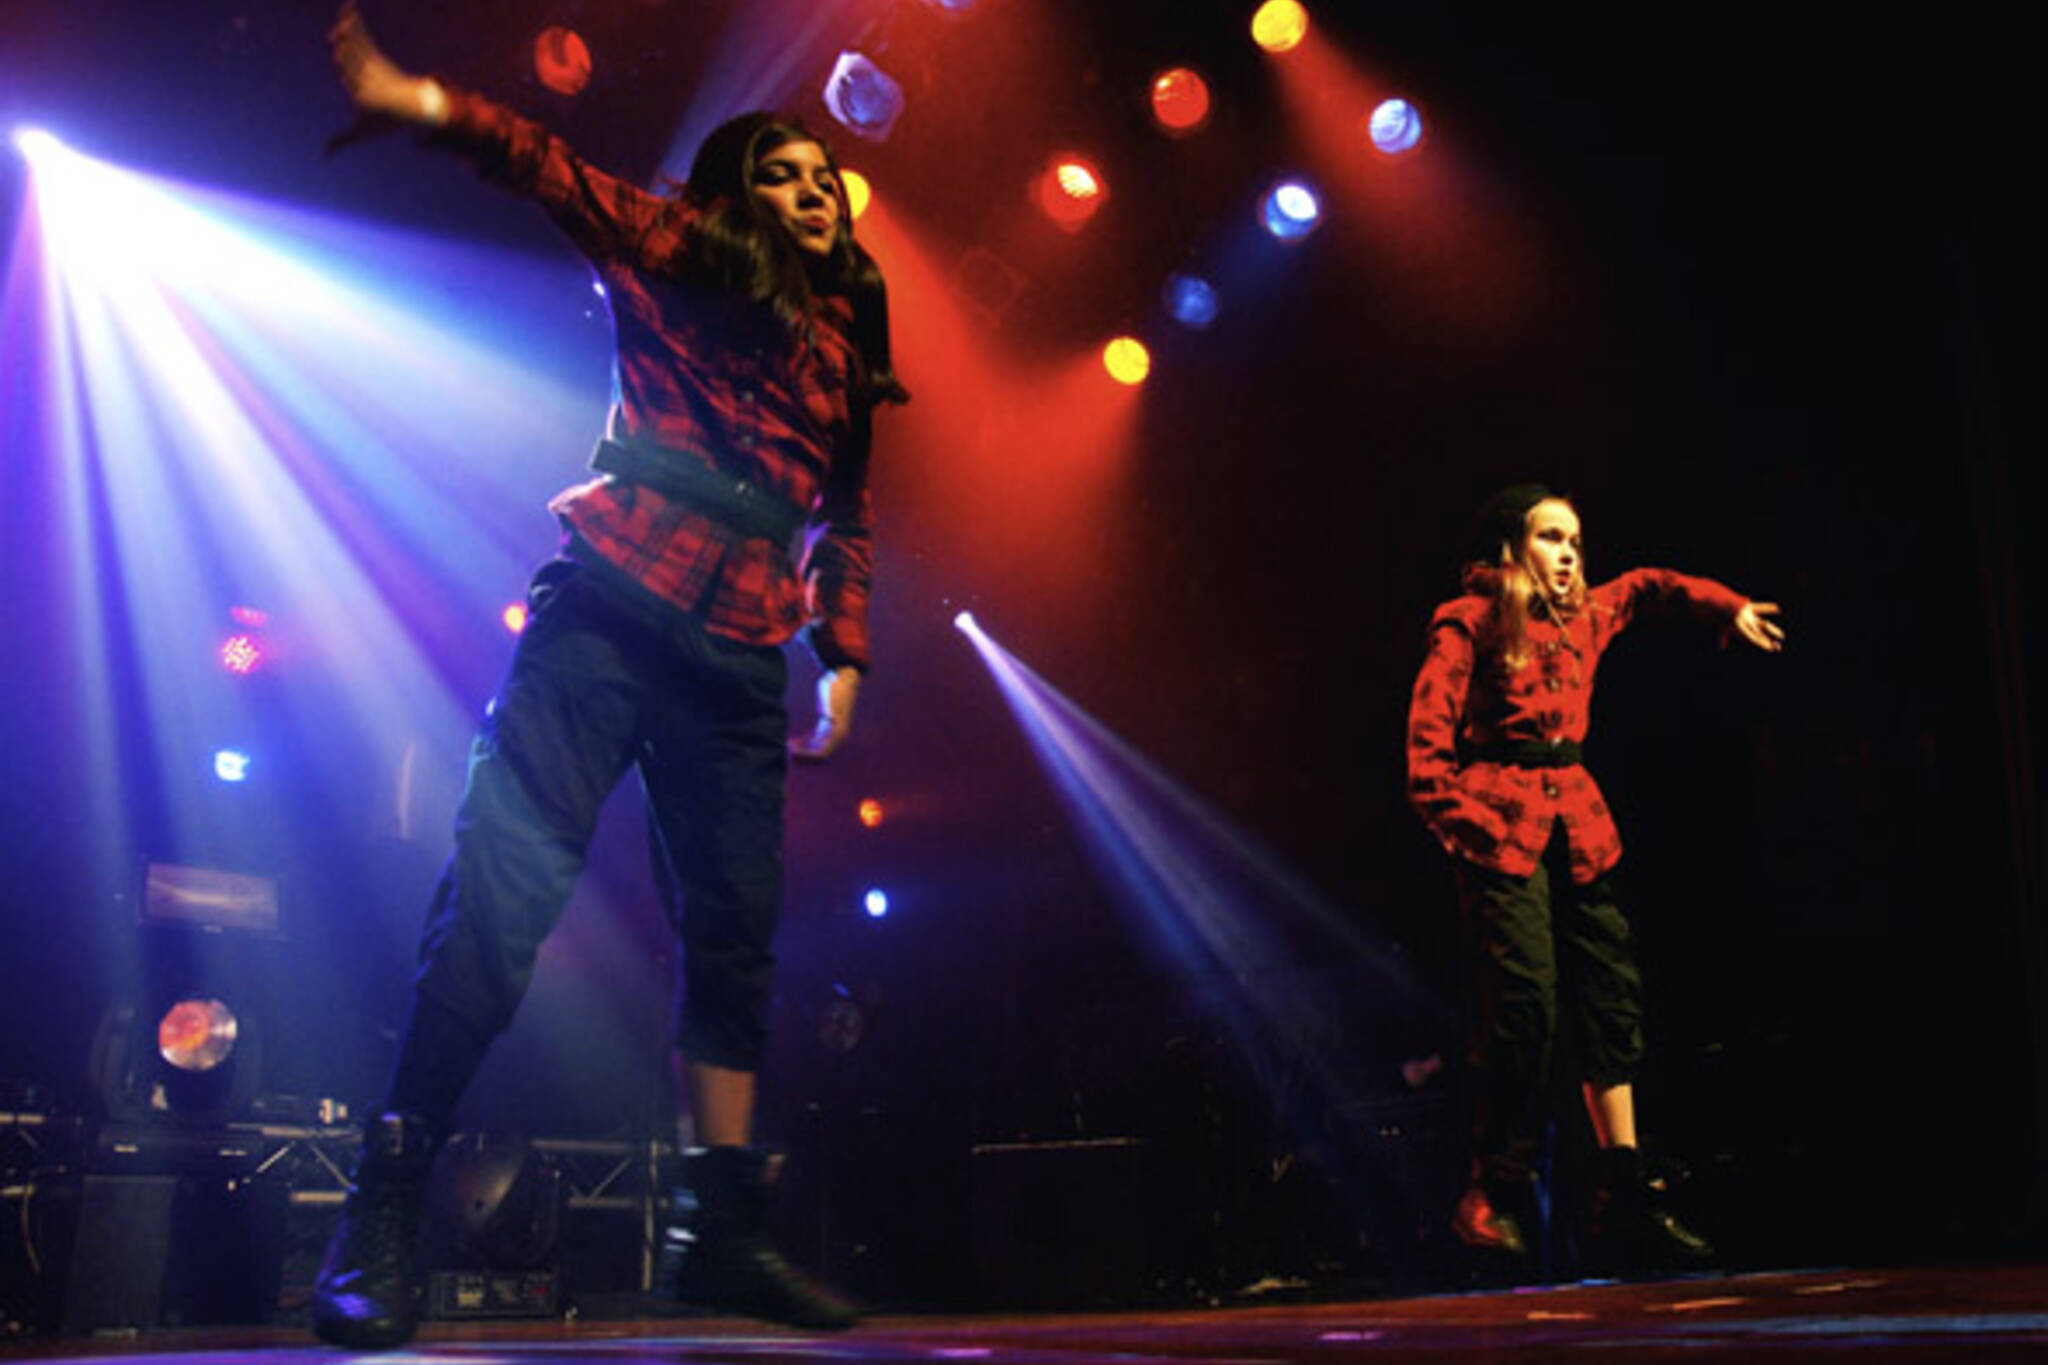 Choreographer's Ball performers, Tha Spot, on stage at The Mod Club Theatre in Toronto